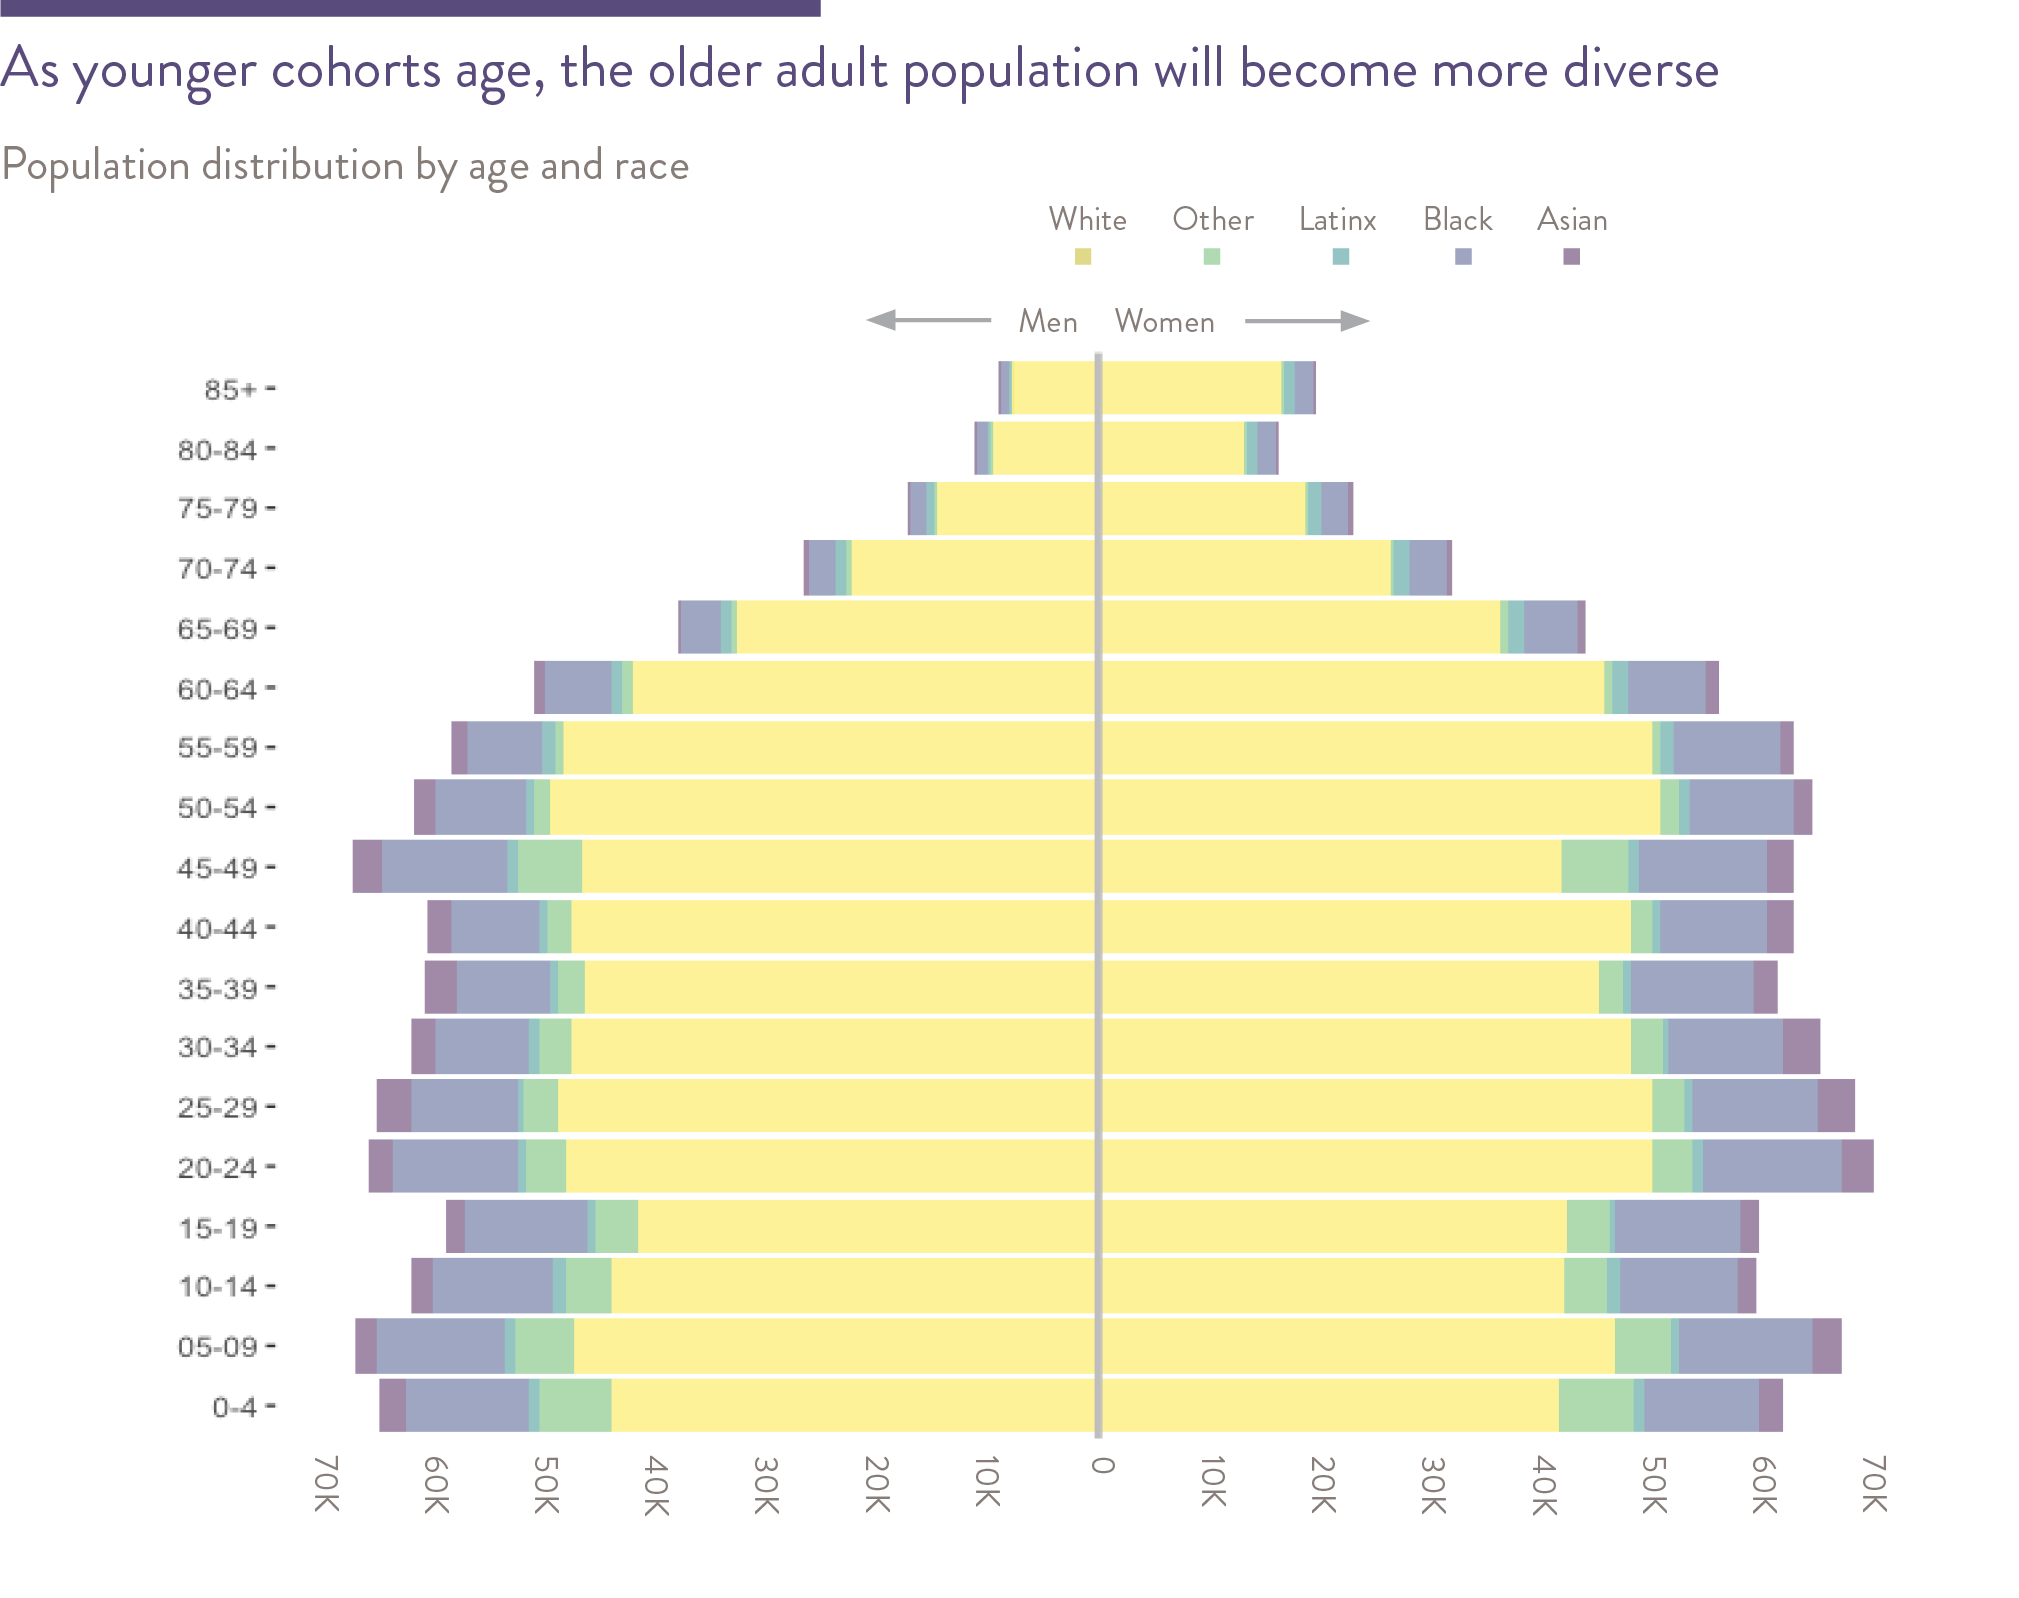 As younger cohorts age, the older adult population will become more diverse